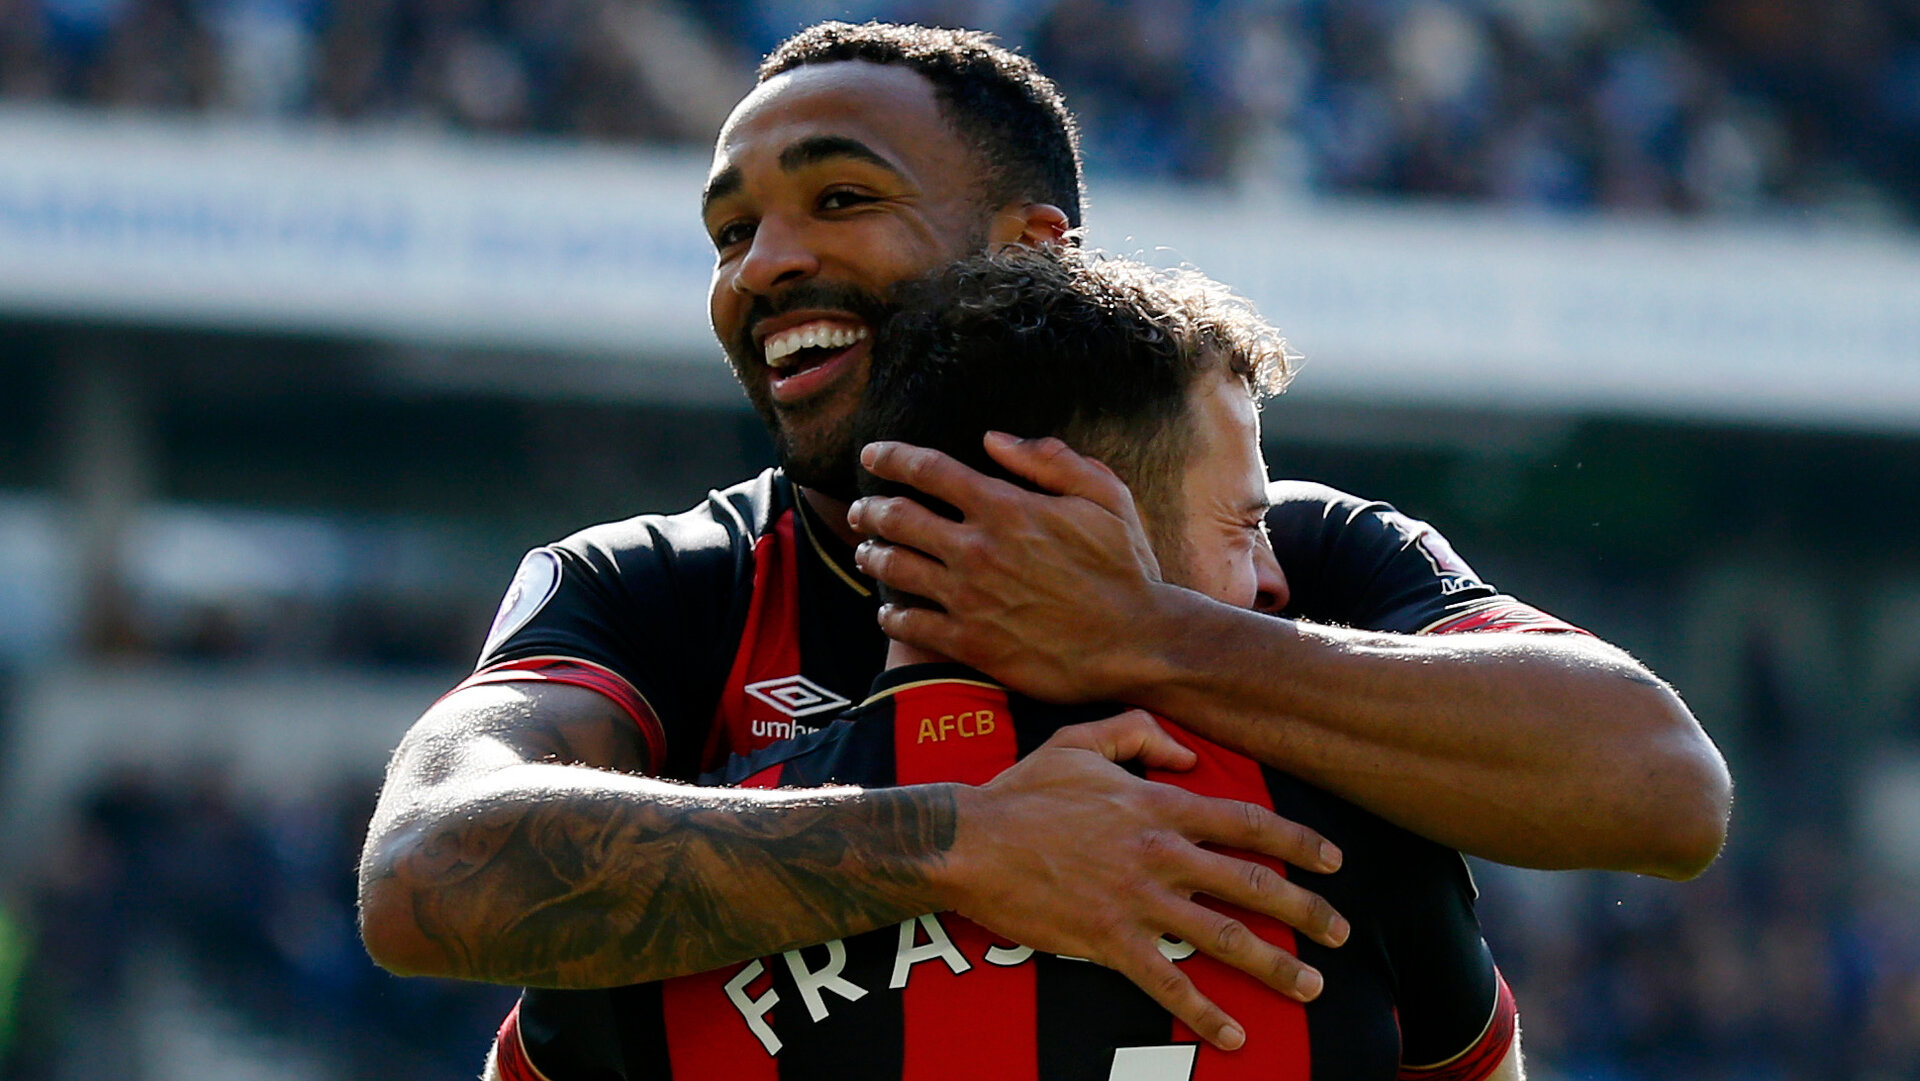 BRIGHTON, ENGLAND - APRIL 13: Ryan Fraser of AFC Bournemouth celebrates with teammate Callum Wilson after scoring his team's second goal during the Premier League match between Brighton & Hove Albion and AFC Bournemouth at American Express Community Stadium on April 13, 2019 in Brighton, United Kingdom. (Photo by Charlie Crowhurst/Getty Images)